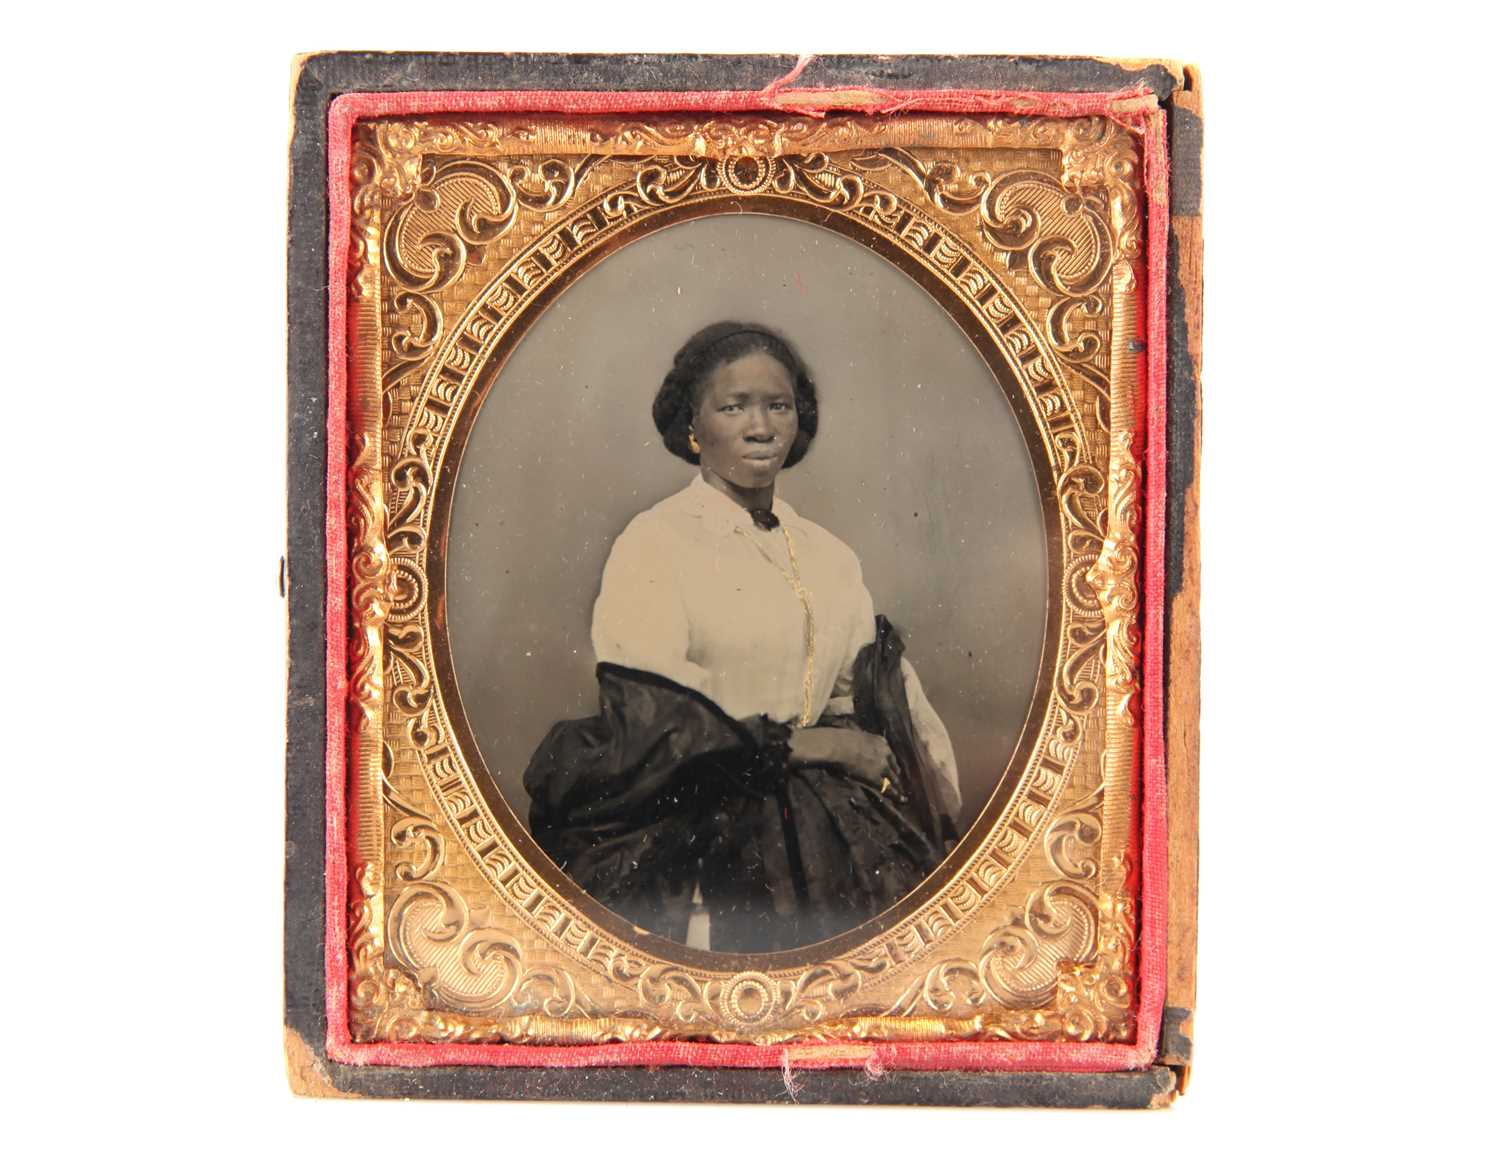 Lot 9 - An Ambrotype of an African-American Woman